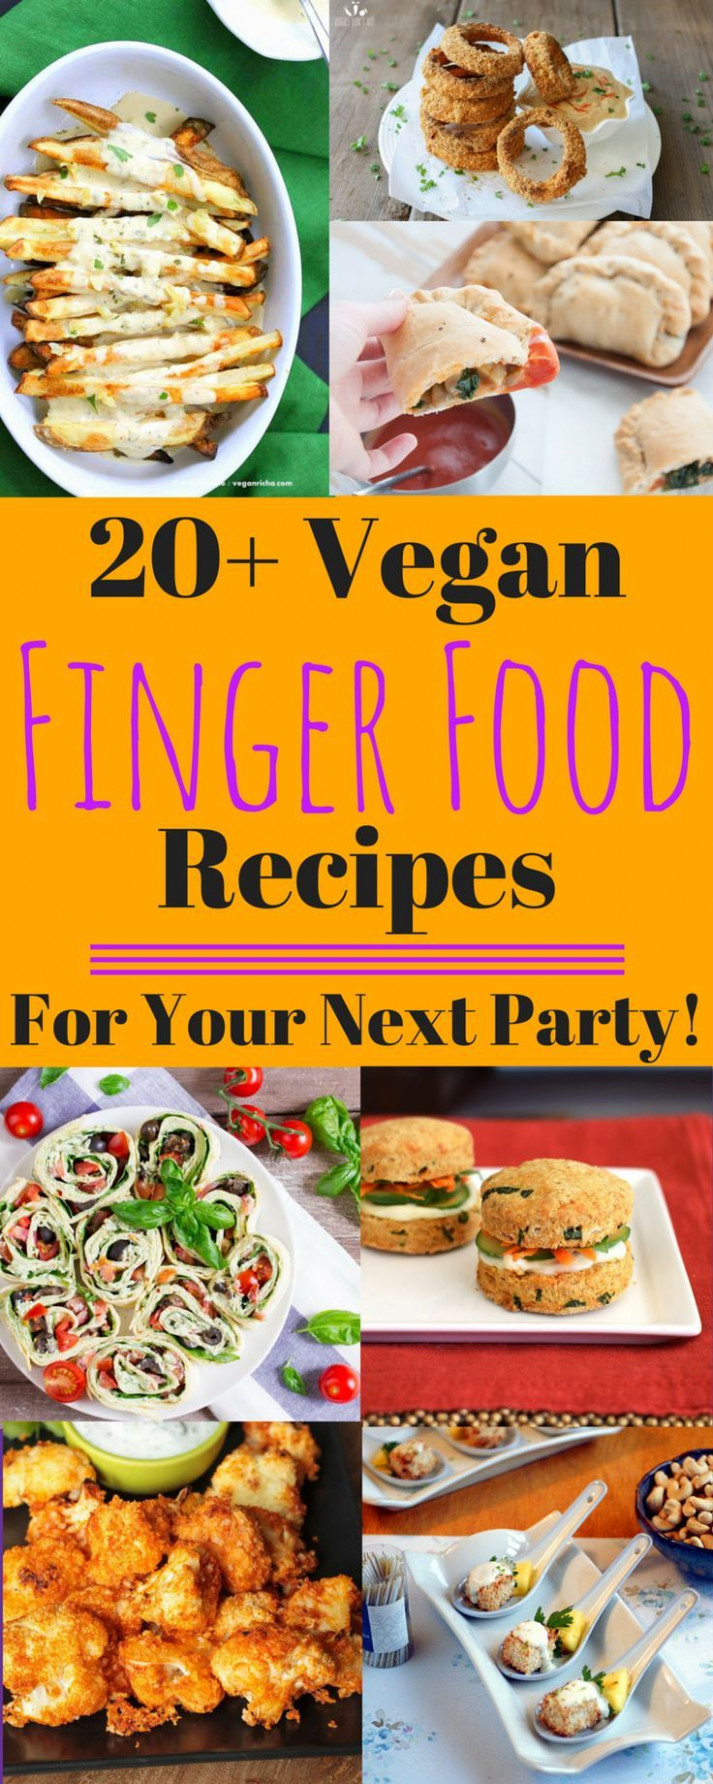 Pin By Vegan Recipes On Vegan Recipes Savory In 2019 ..